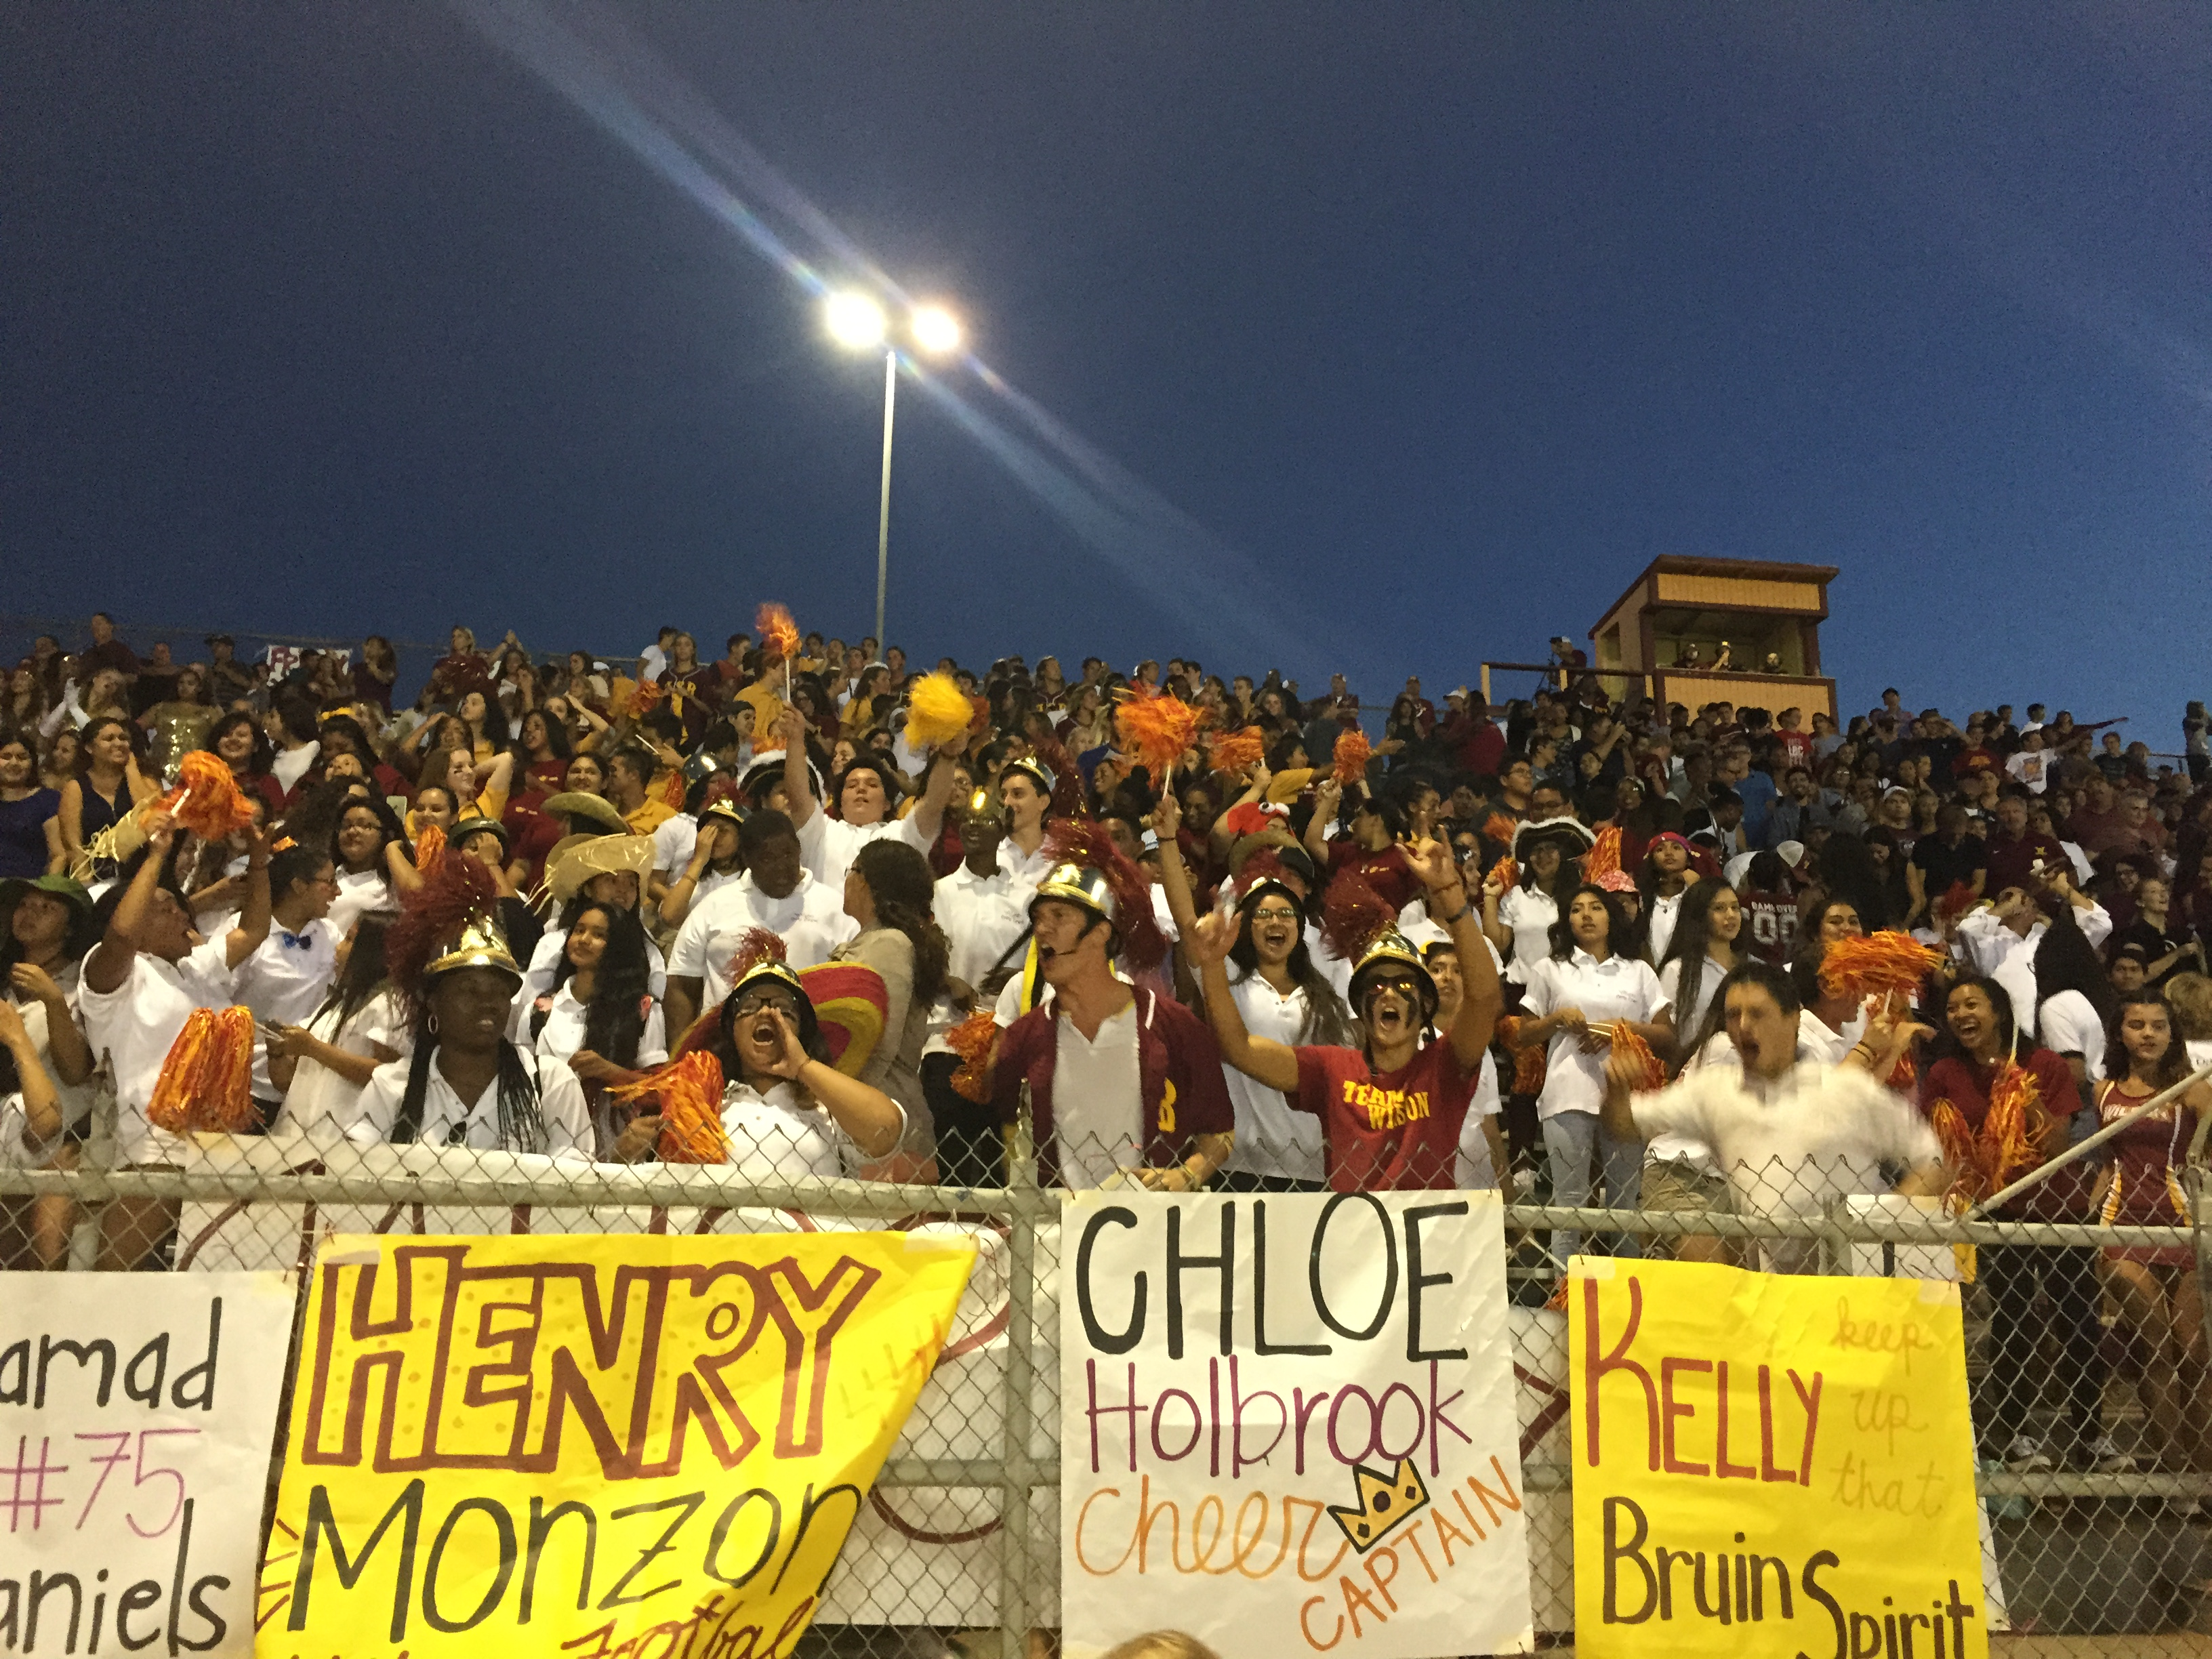 Just Another Great Friday Night To Be A Bruin!